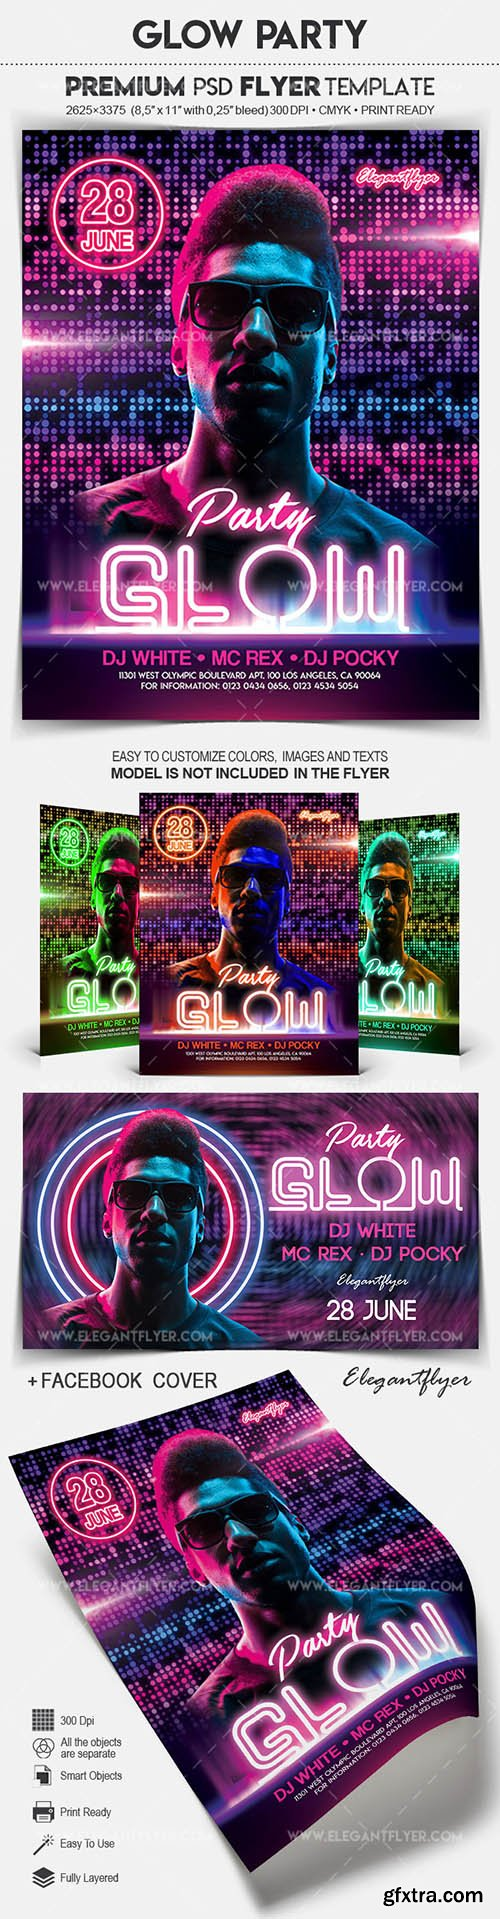 Glow Party - Flyer PSD Template